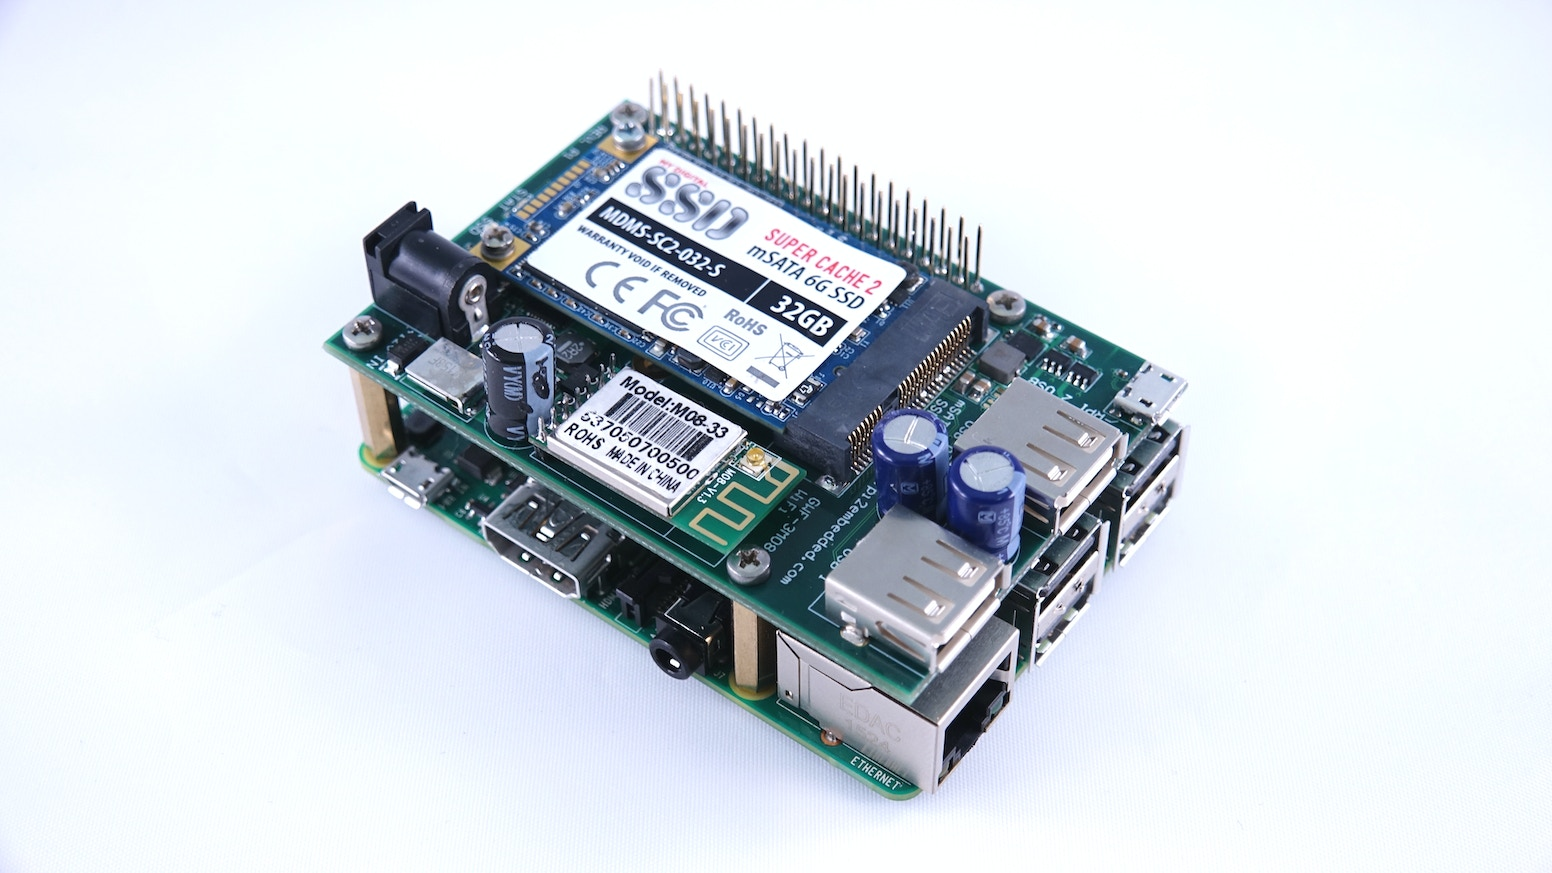 SSD, WiFi, RTC w/Battery and high power USB all in one shield.